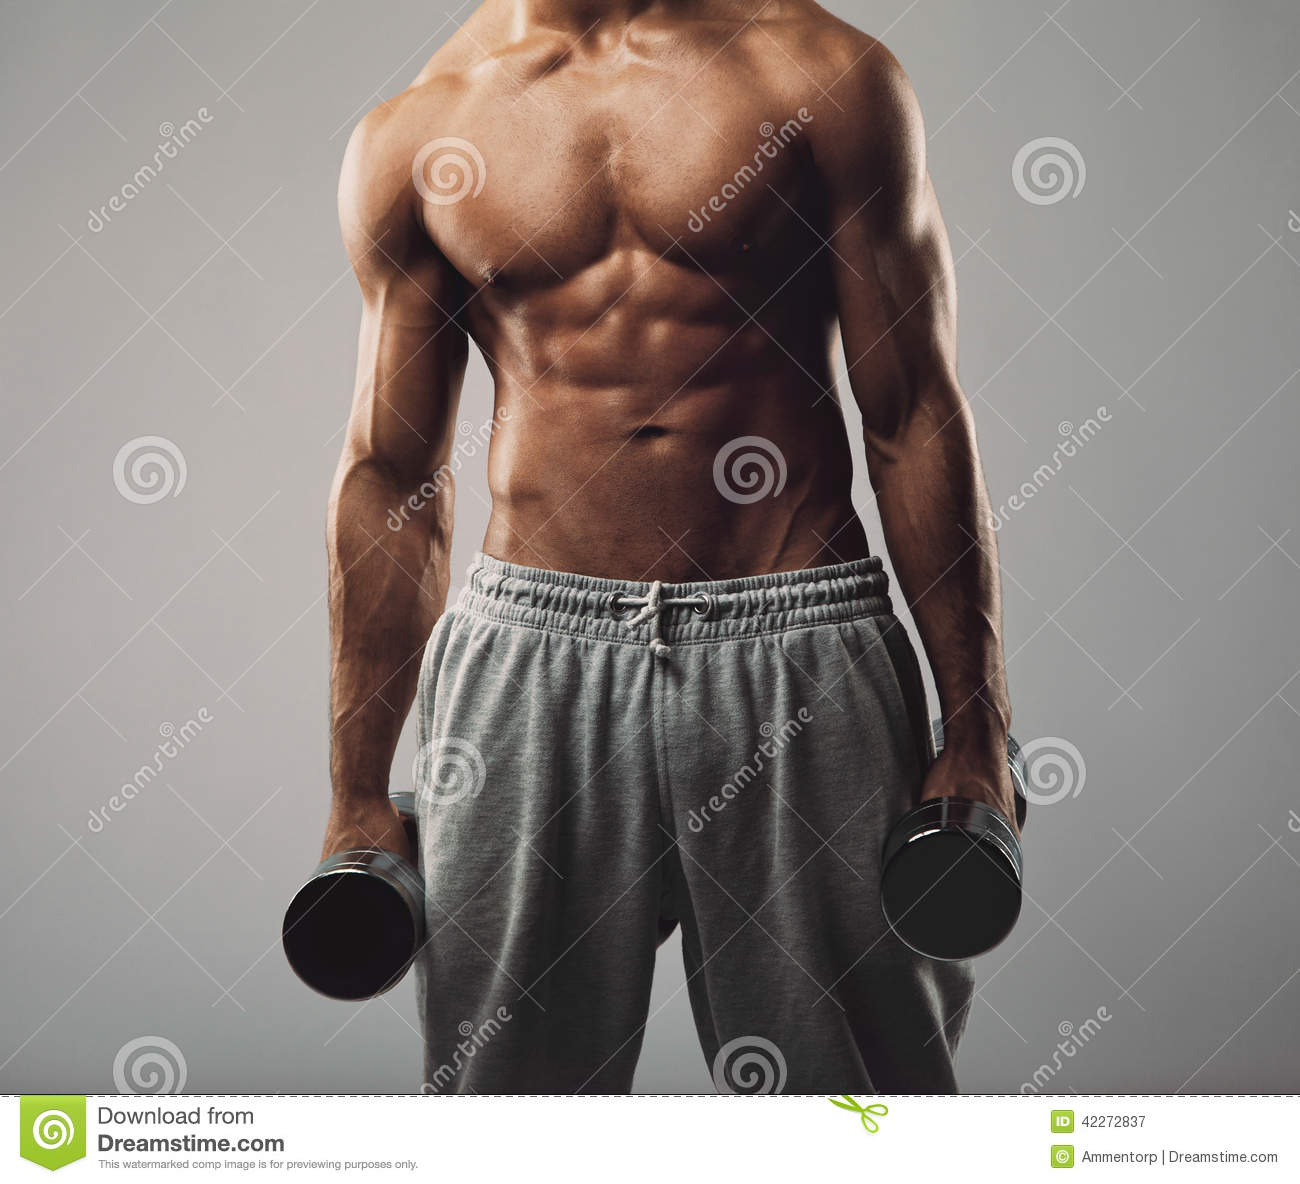 fitness men working out - photo #22